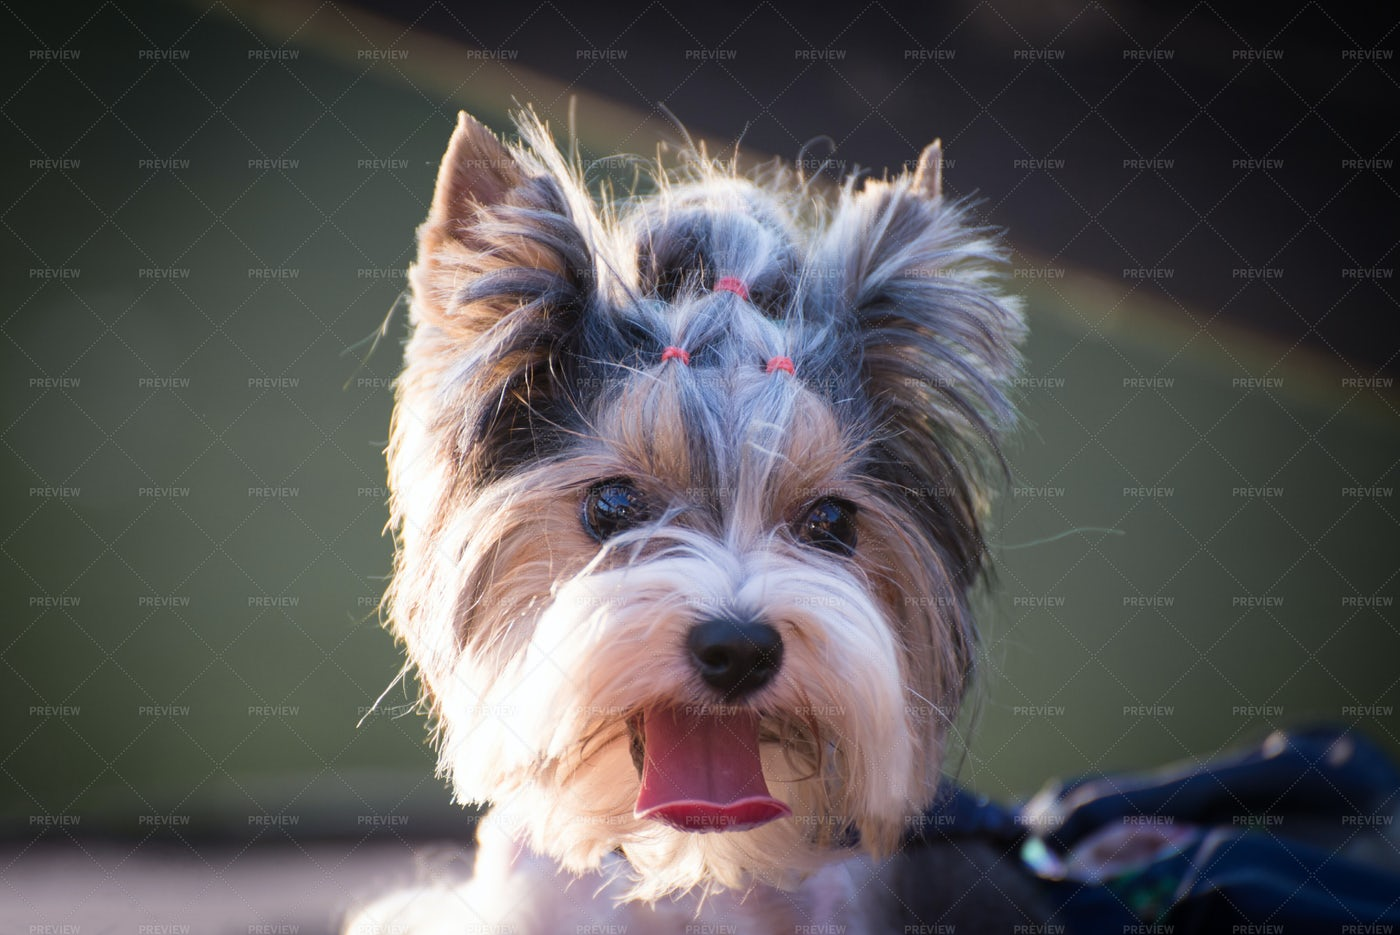 Dog With A Hairstyle: Stock Photos